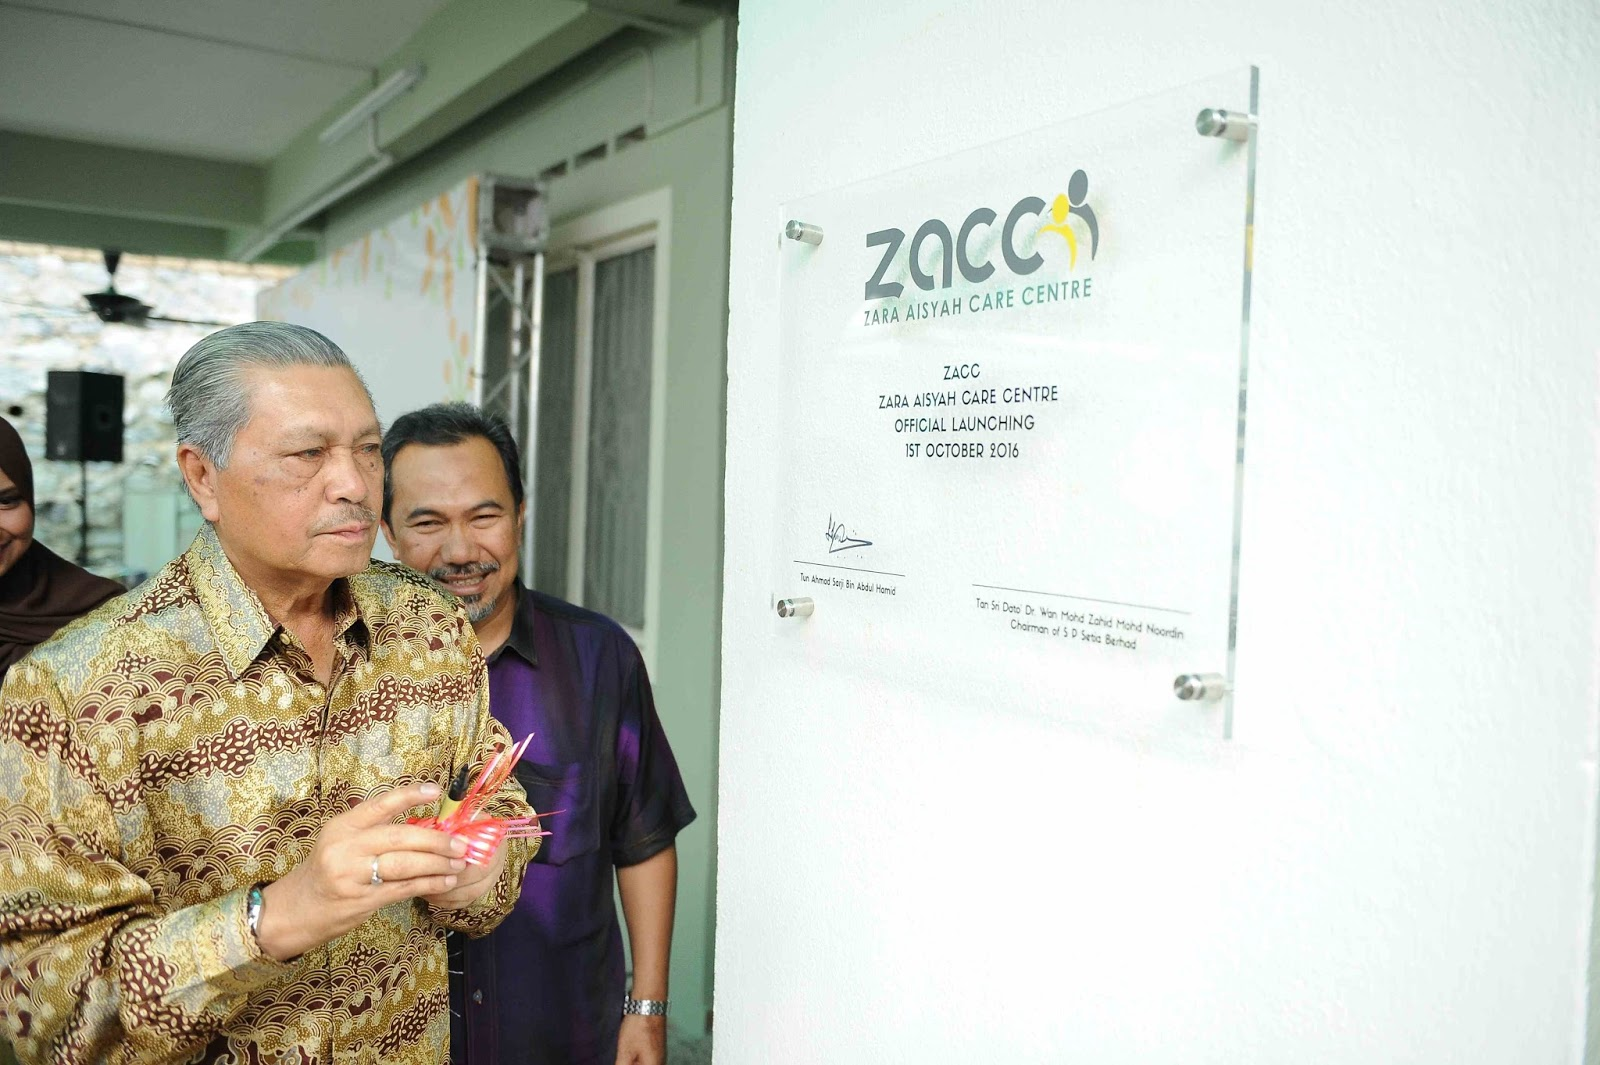 the lifestyle blogger zara aisyah care centre on 1st 2016 zacc is officially launched in a relaxed and comfortable event at the centre itself it is officiated by tun ahmad sarji abdul hamid